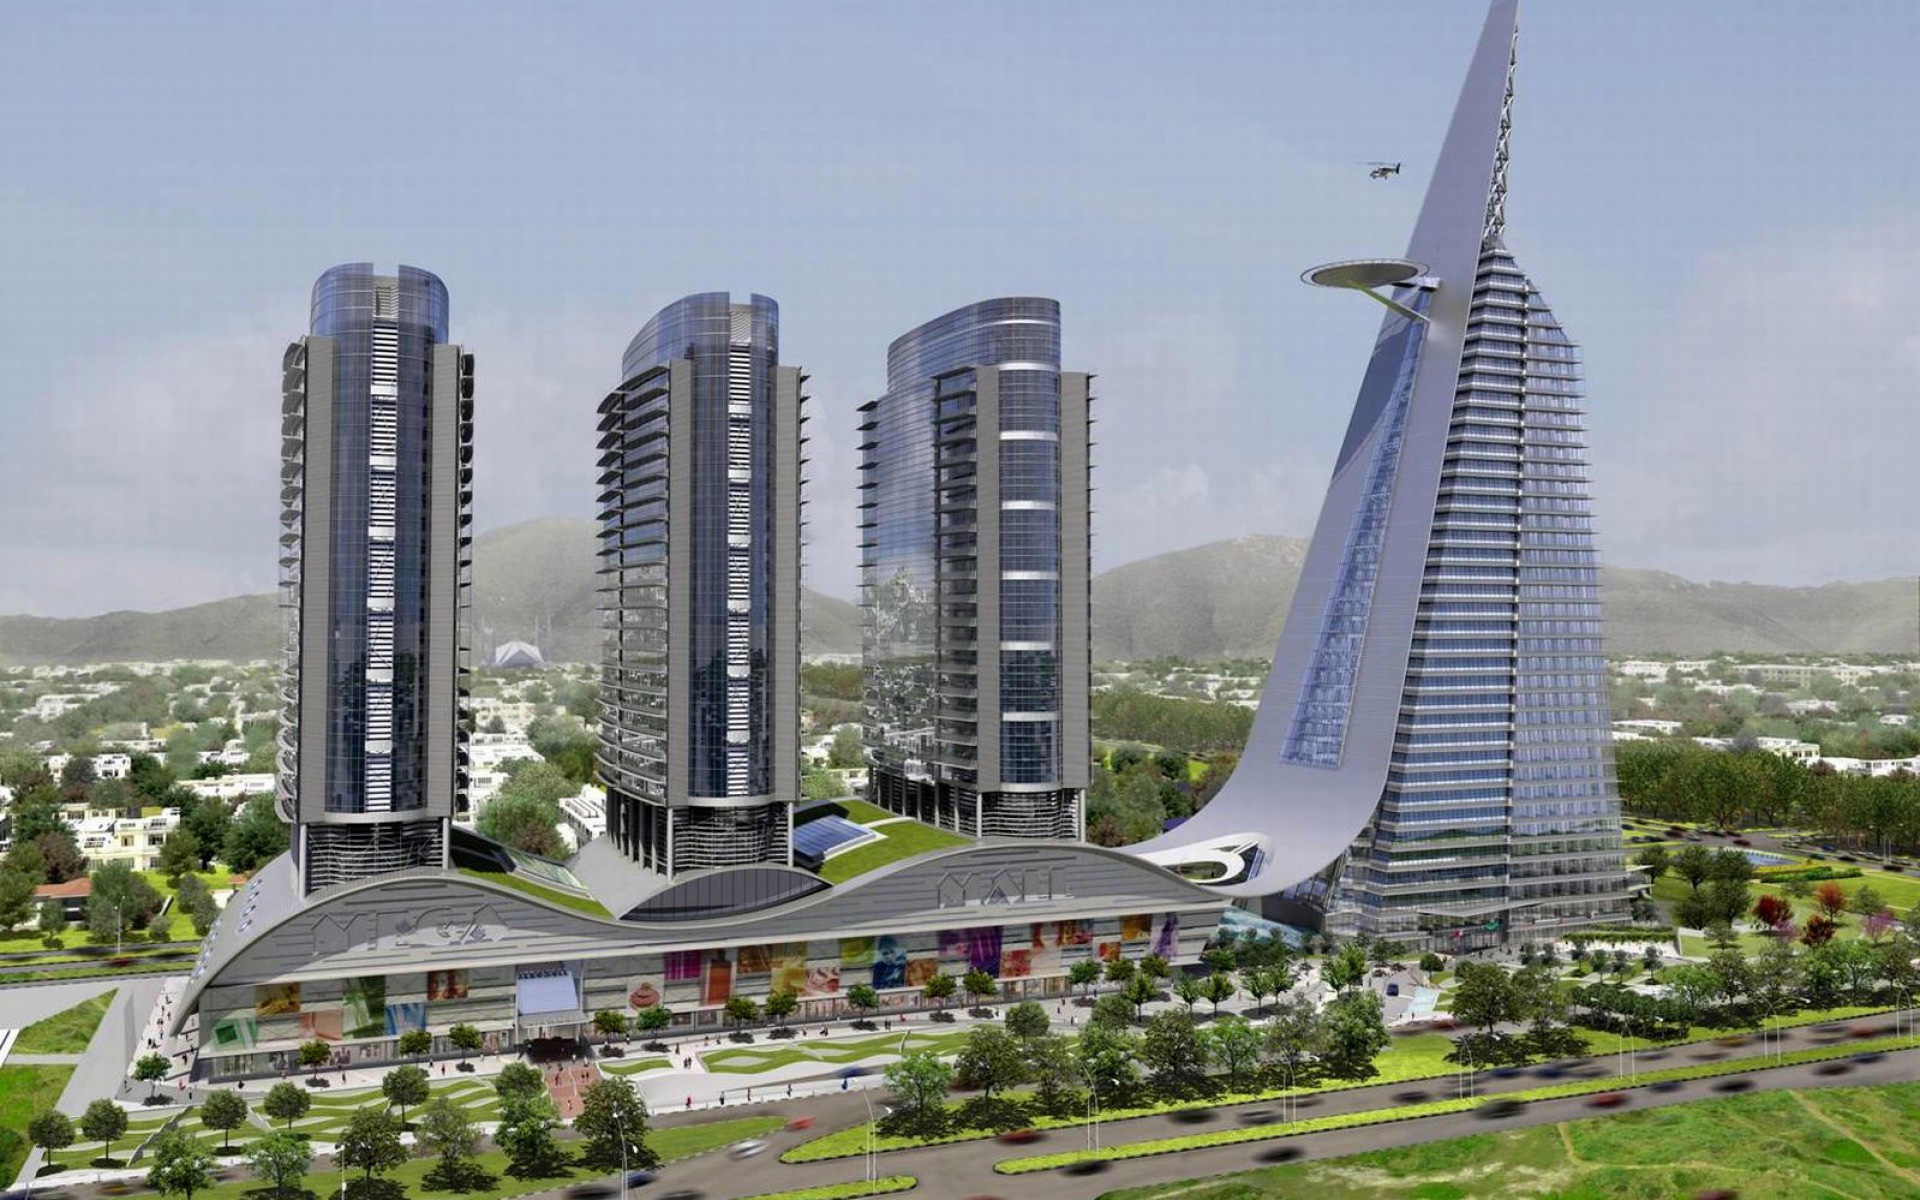 Centaurus Mall, Top Places to Visit in Islamabad